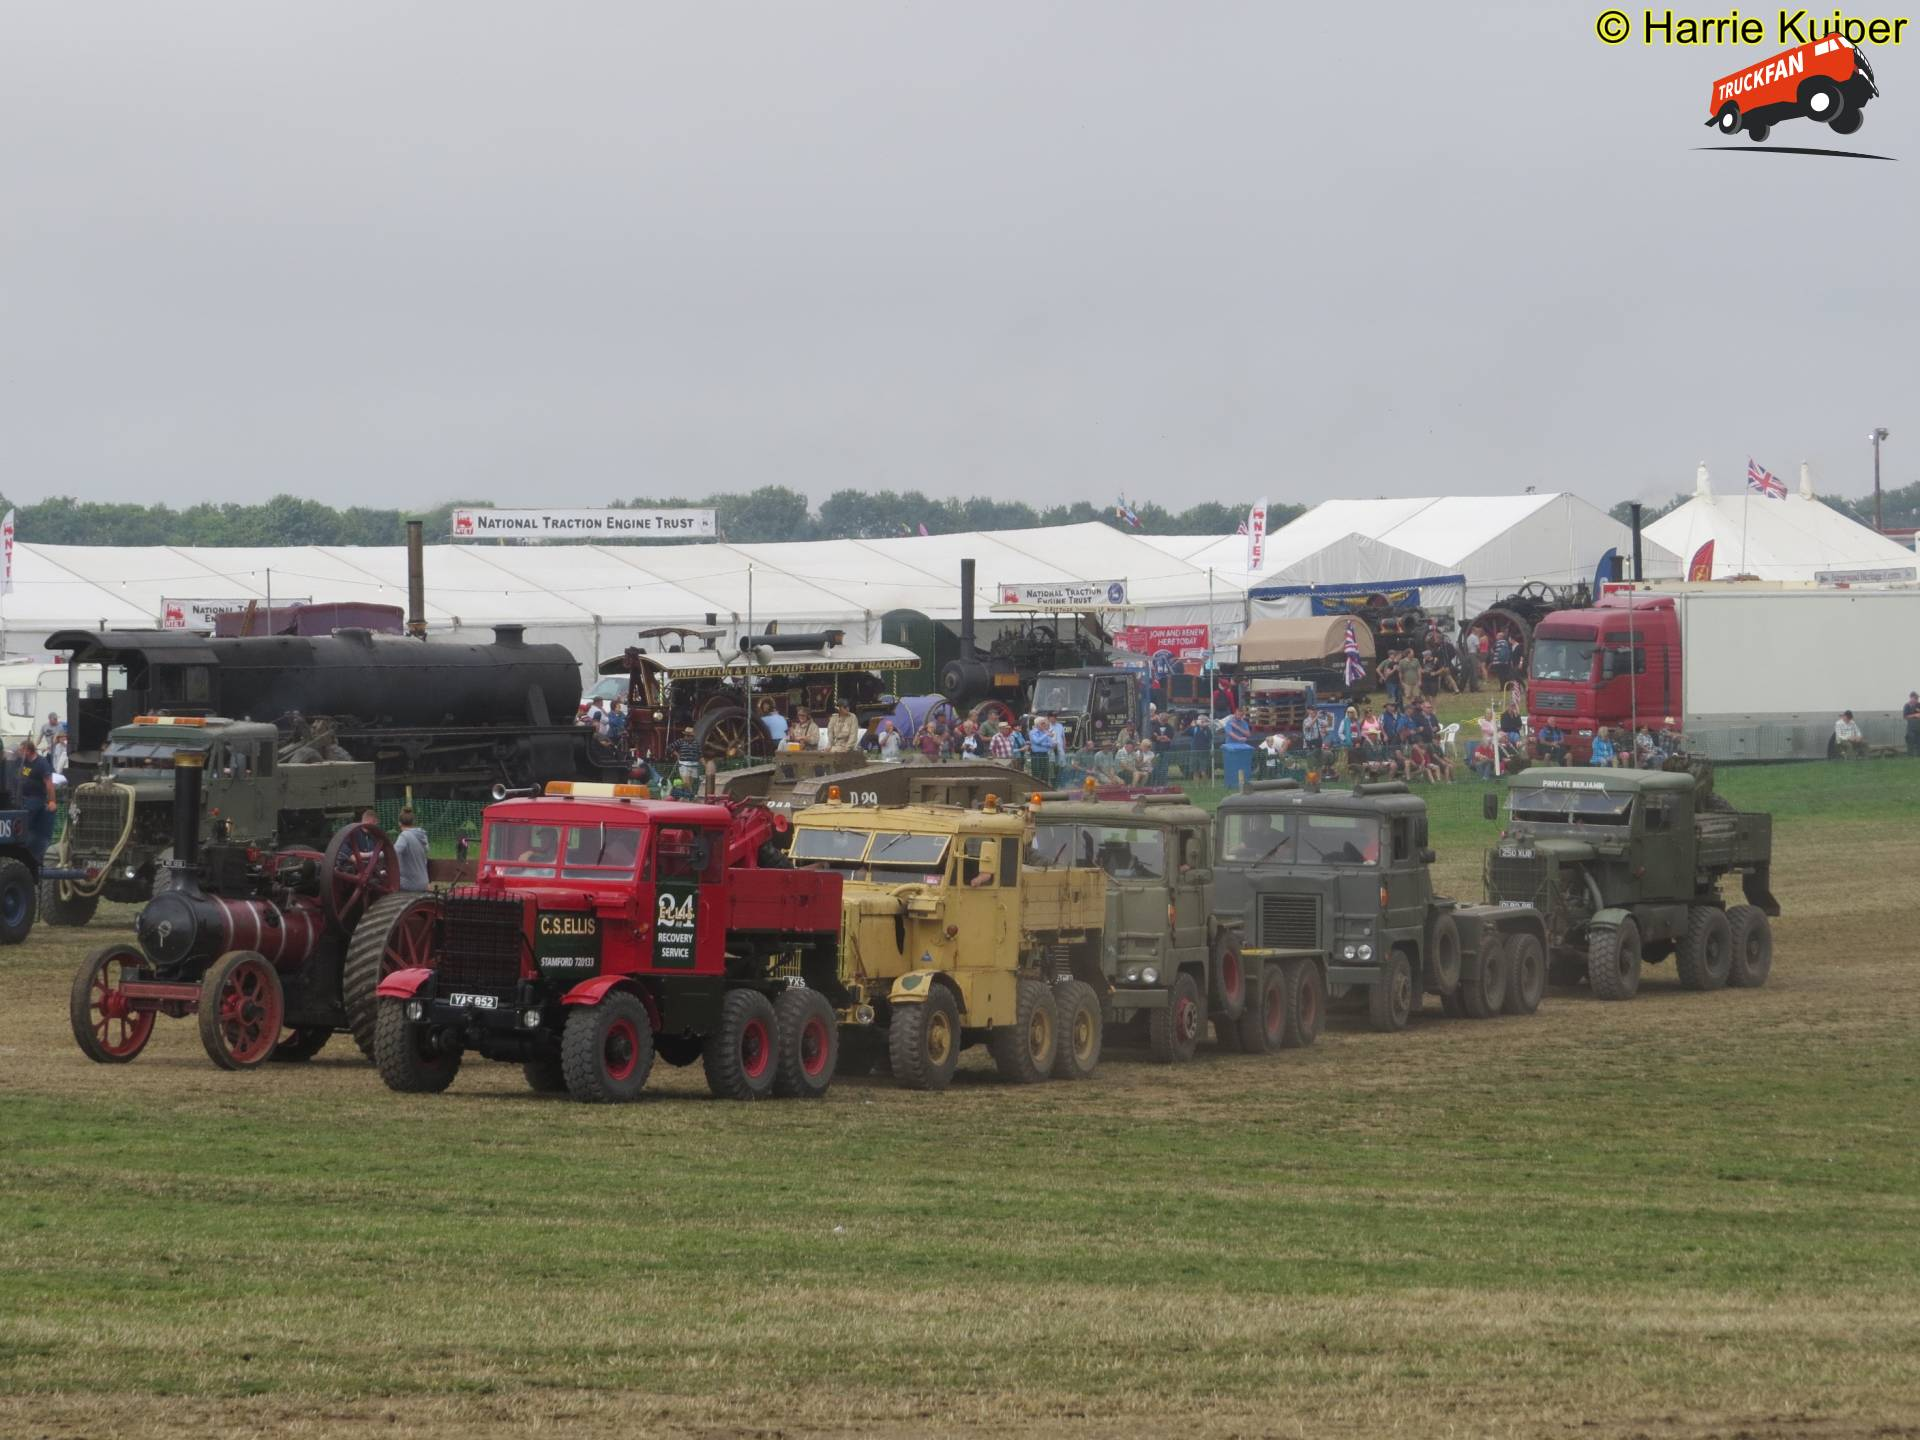 Scammell meerdere